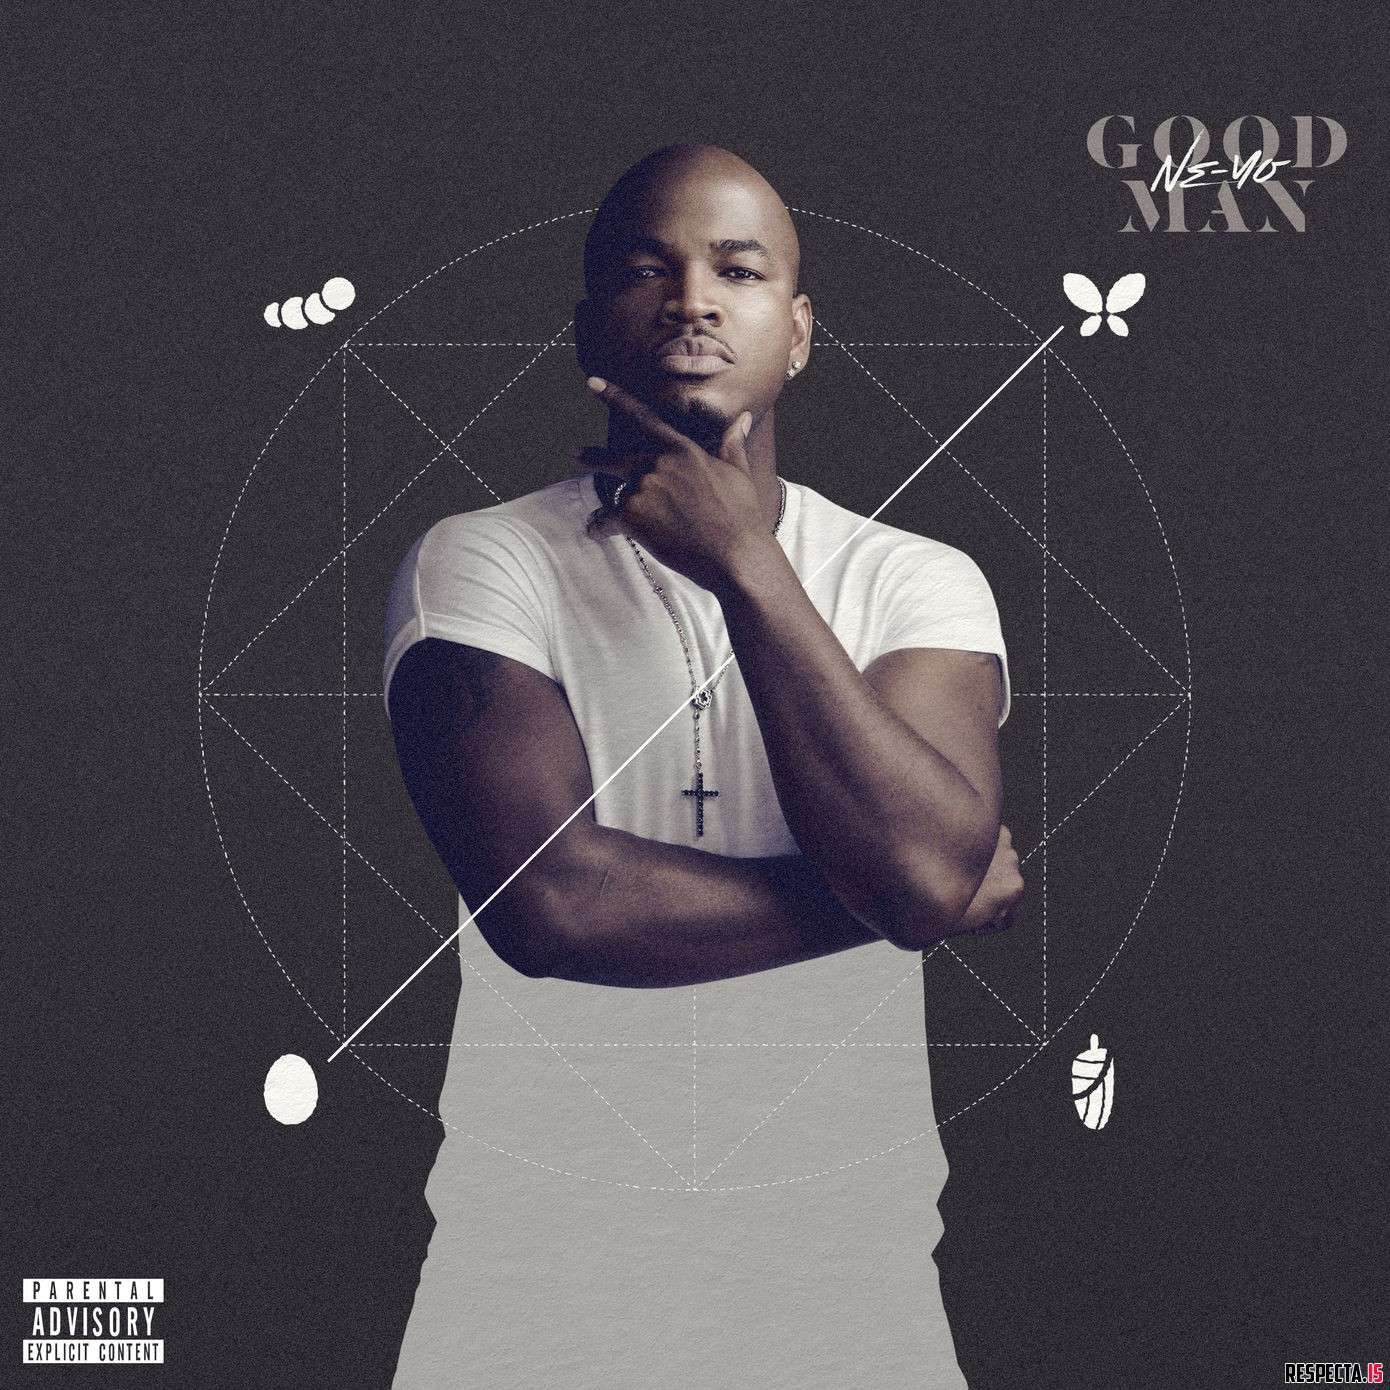 1528323557_ne-yo-good-man-deluxe.jpg